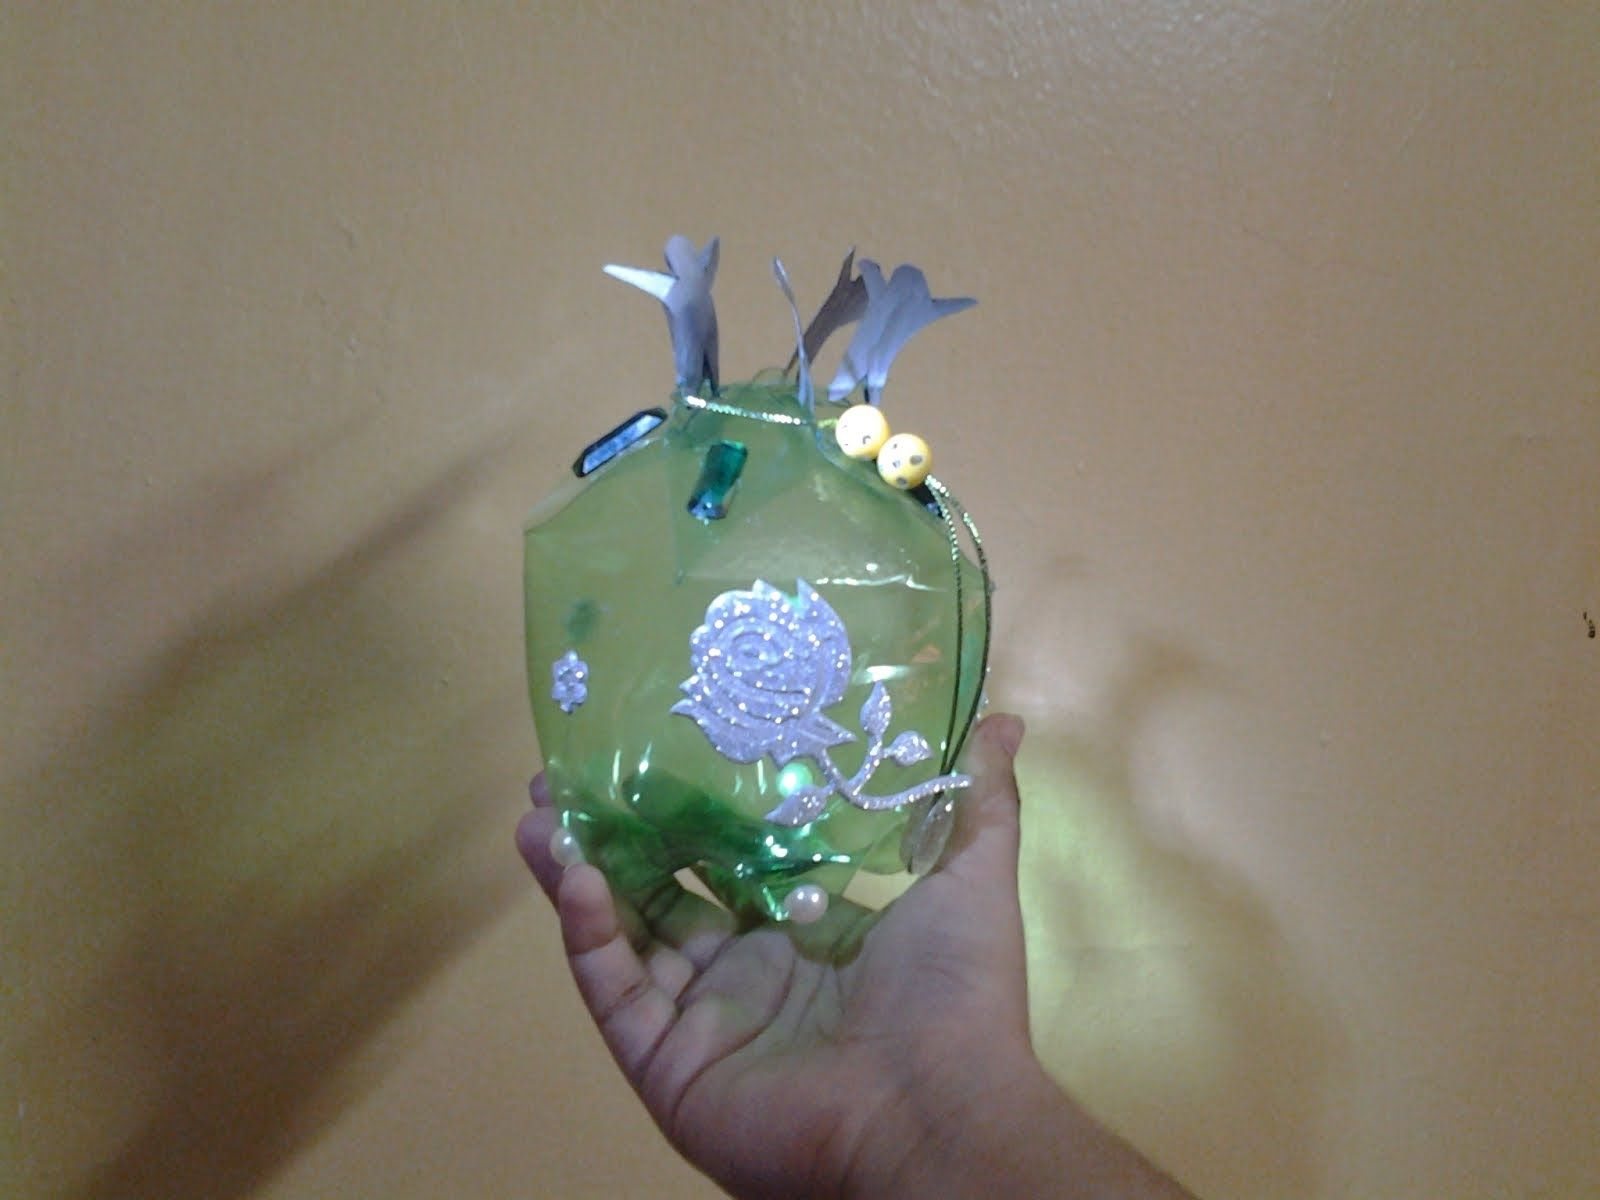 Best out of waste plastic bottle transformed to unity gift for Craft using waste bottles